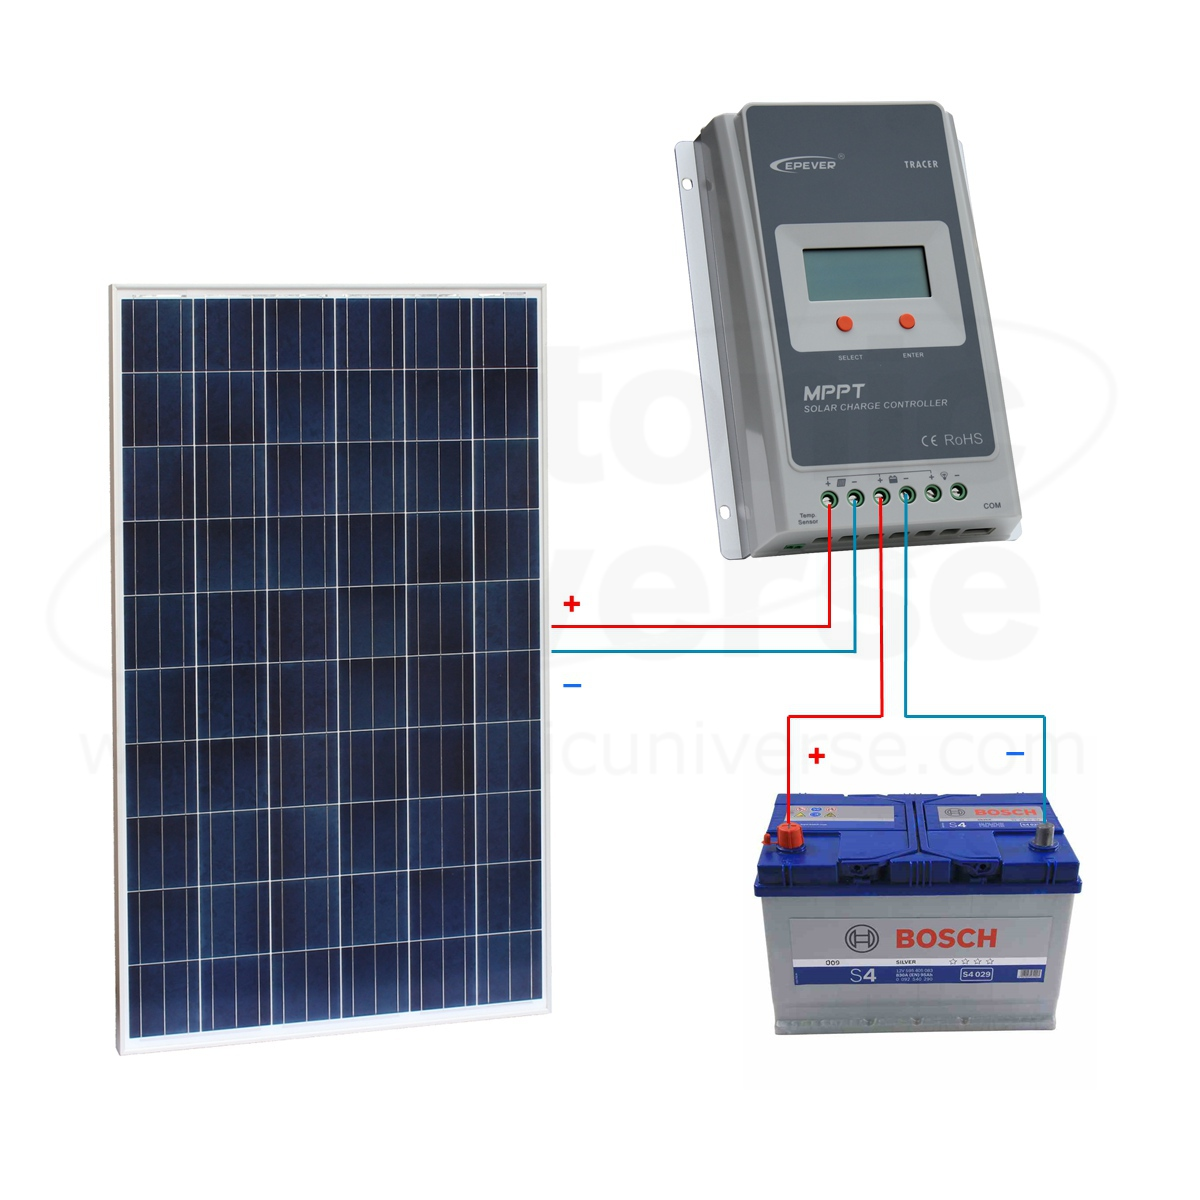 Solar Panel Array Wiring Diagram Solar Panels Wiring Diagram Solar